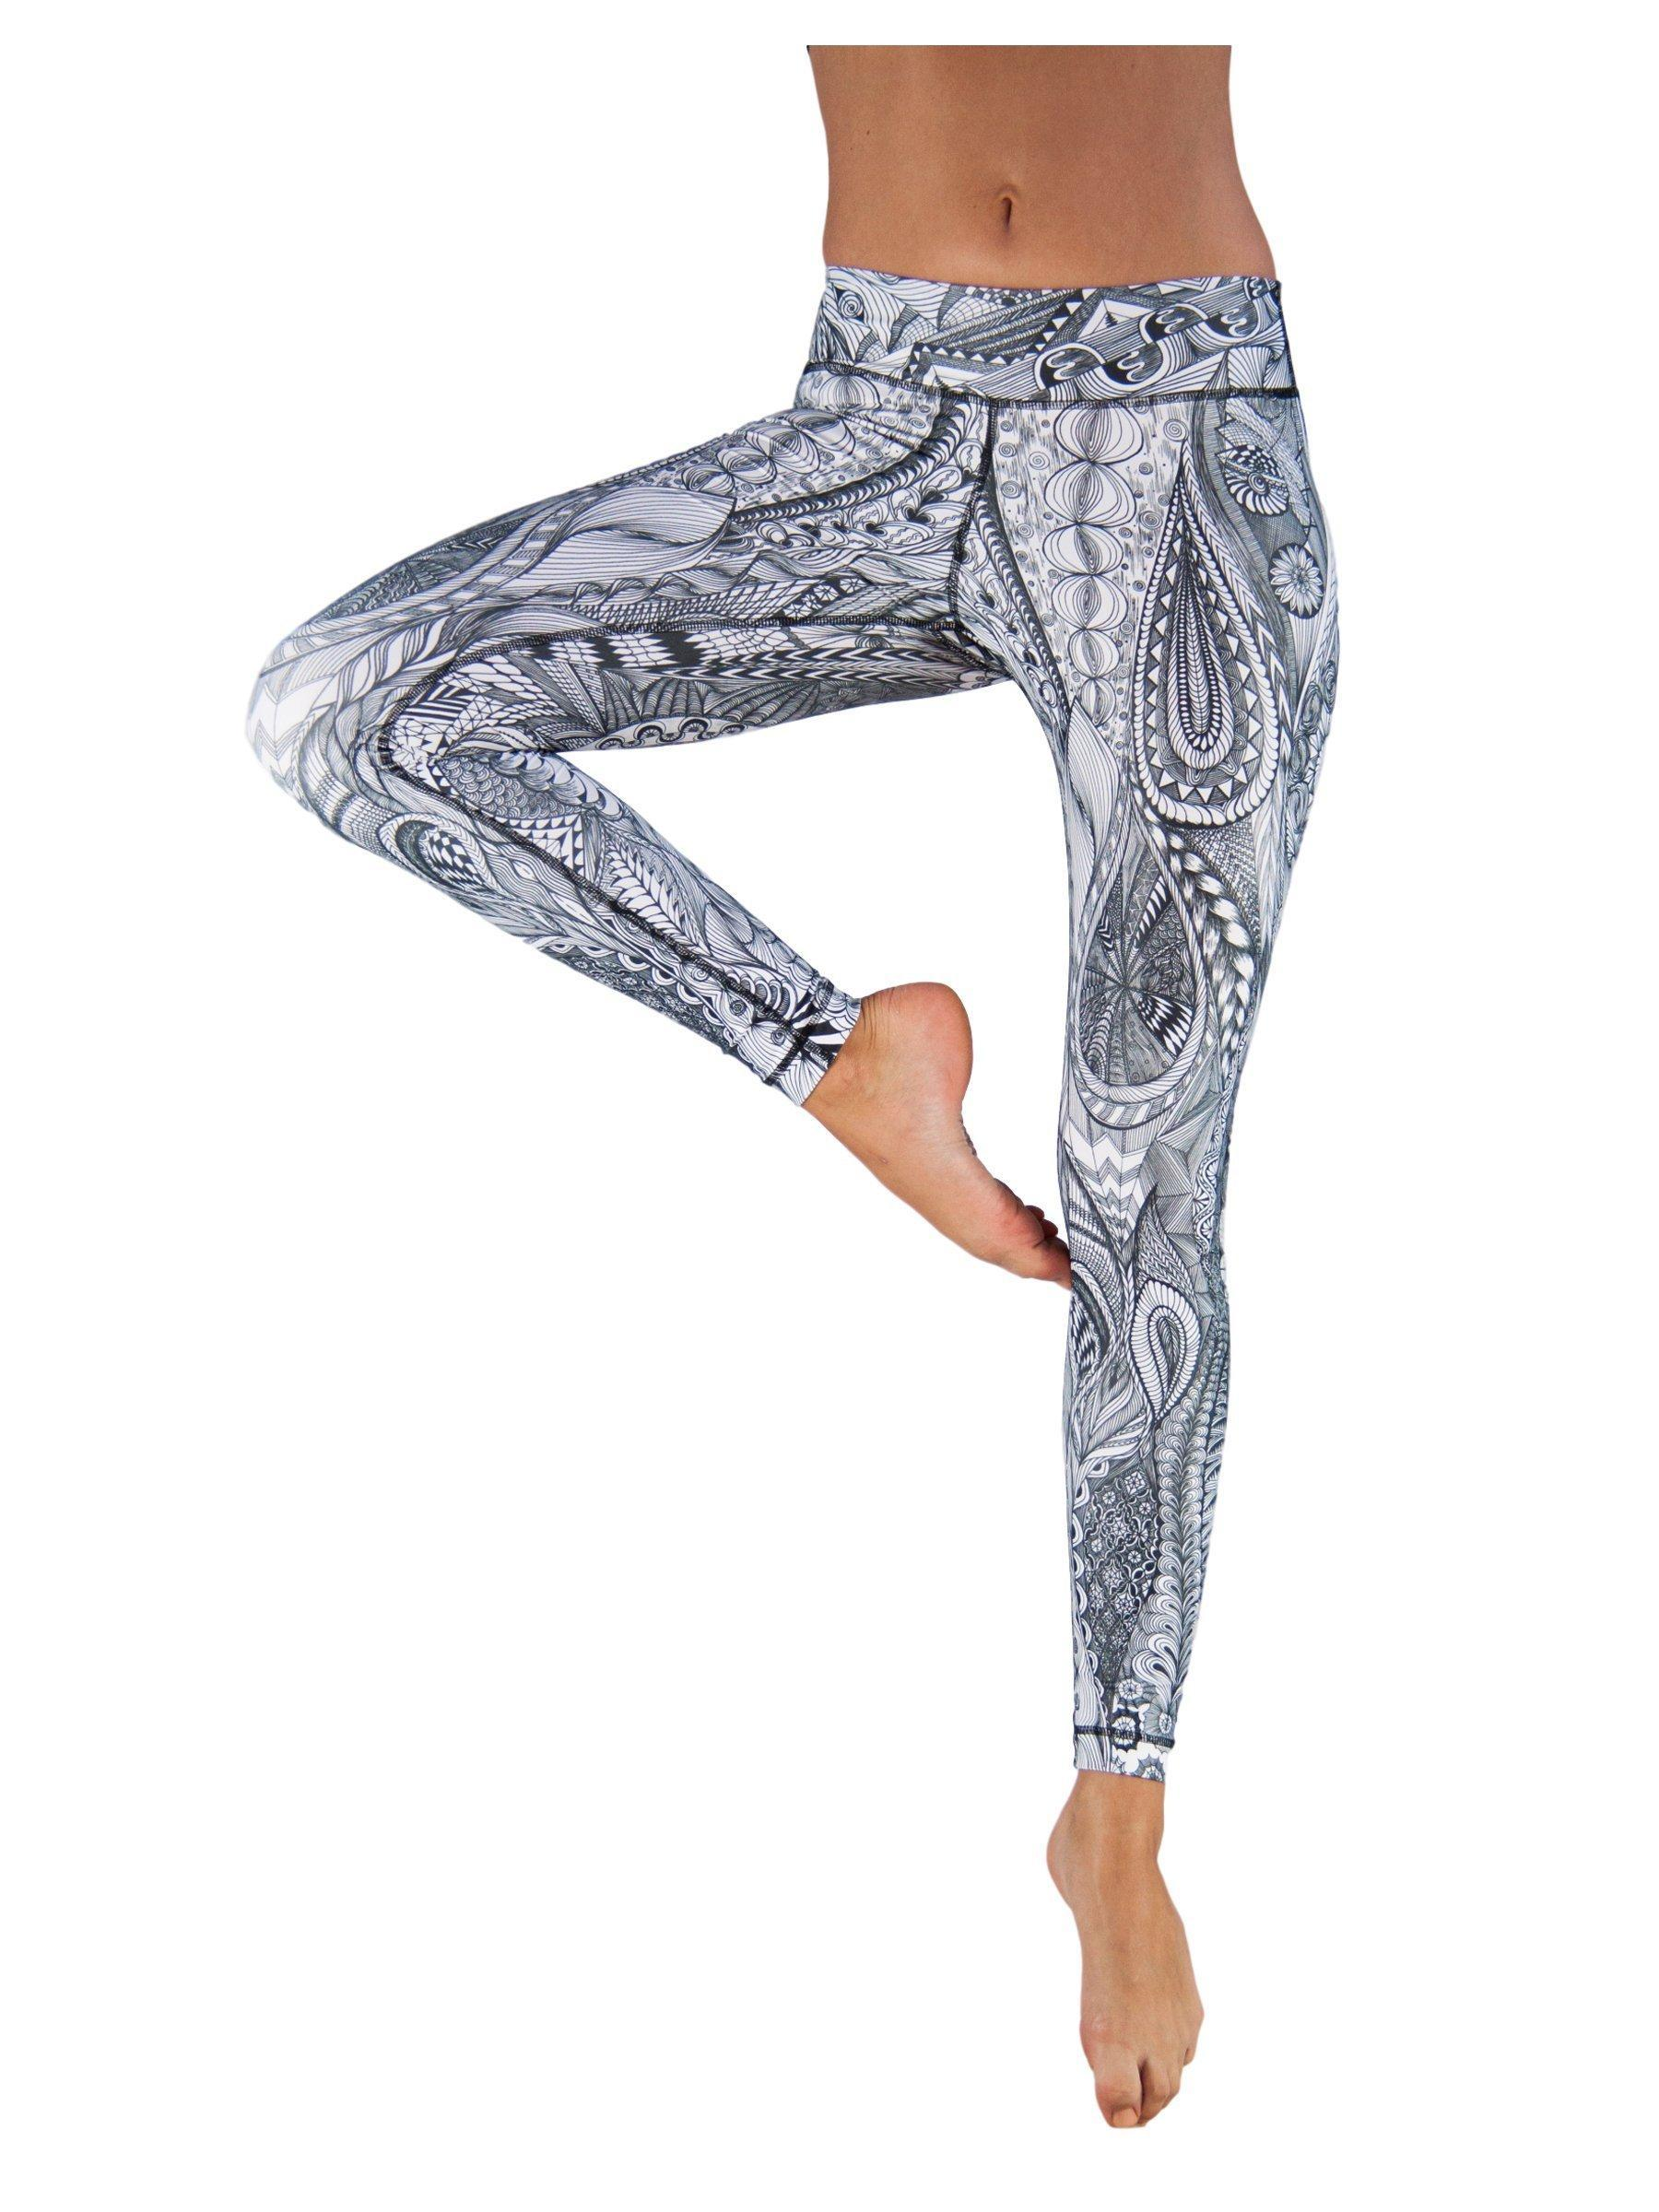 Zentangle by Niyama - High Quality, , Yoga Legging for Movement Artists.